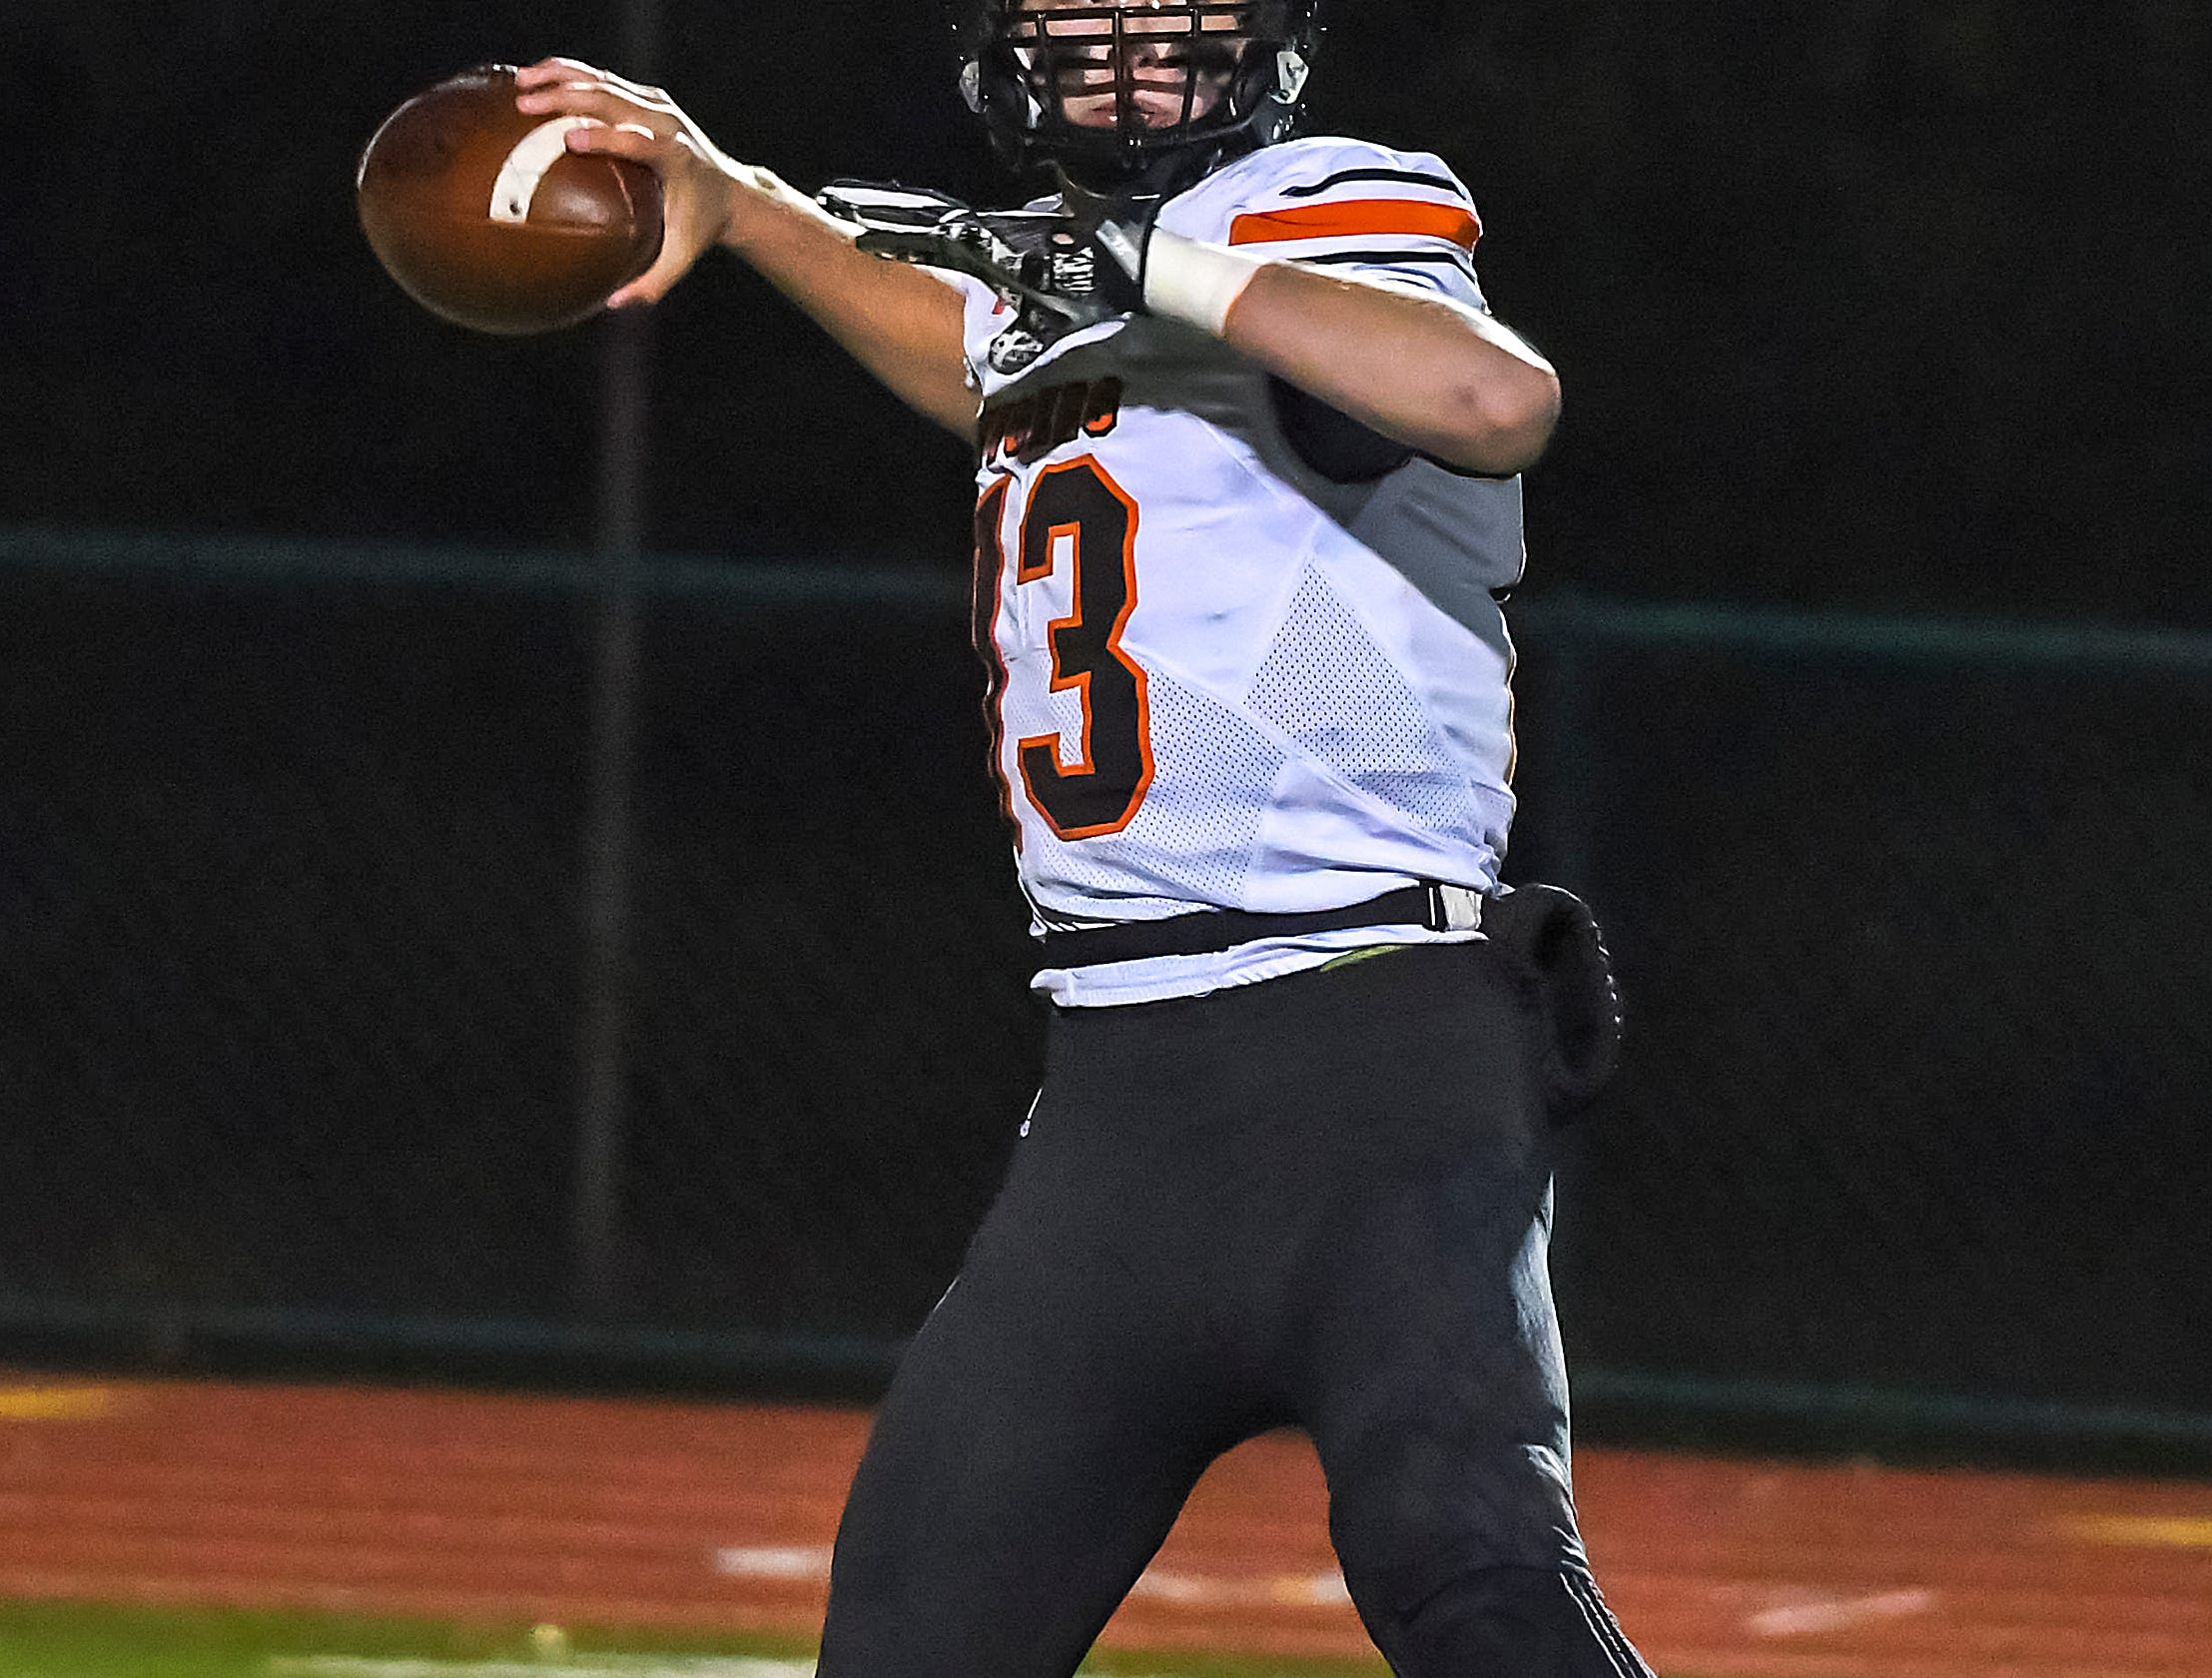 Haydn' Shanks of Waverly attempts a pass against Indian Hill in the OHSAA D4 Region 16 Playoffs at Indian Hill High School, Saturday, Nov. 3, 2018